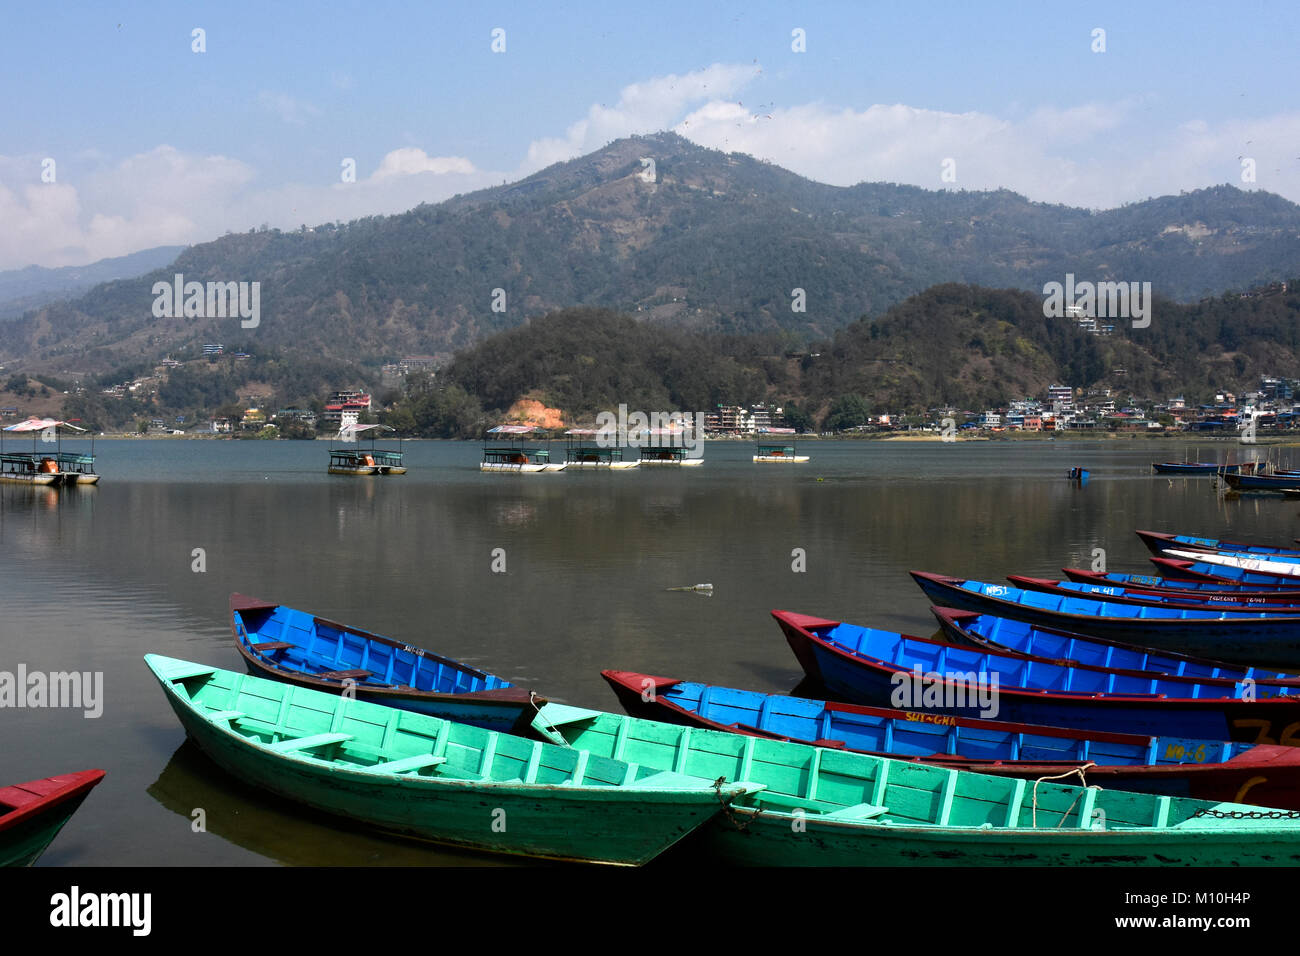 Boats on the Lake at Lakeside Lake Pewa, Pokhara, Nepal - Stock Image